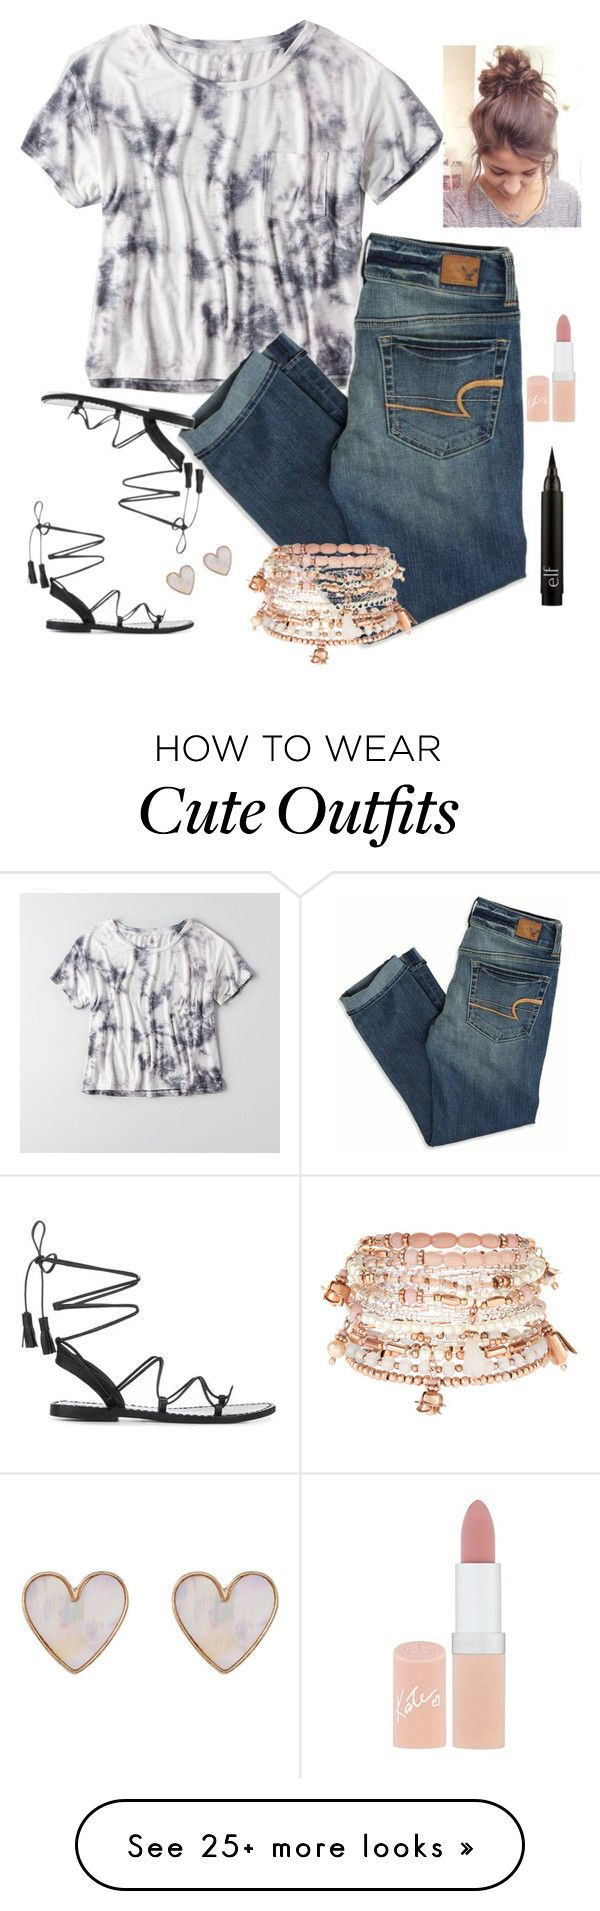 """ootd // #11"" by jenvince23 on Polyvore featuring American Eagle Outfitters, Anine Bing, New Look, Accessorize, Rimmel and jensootd"